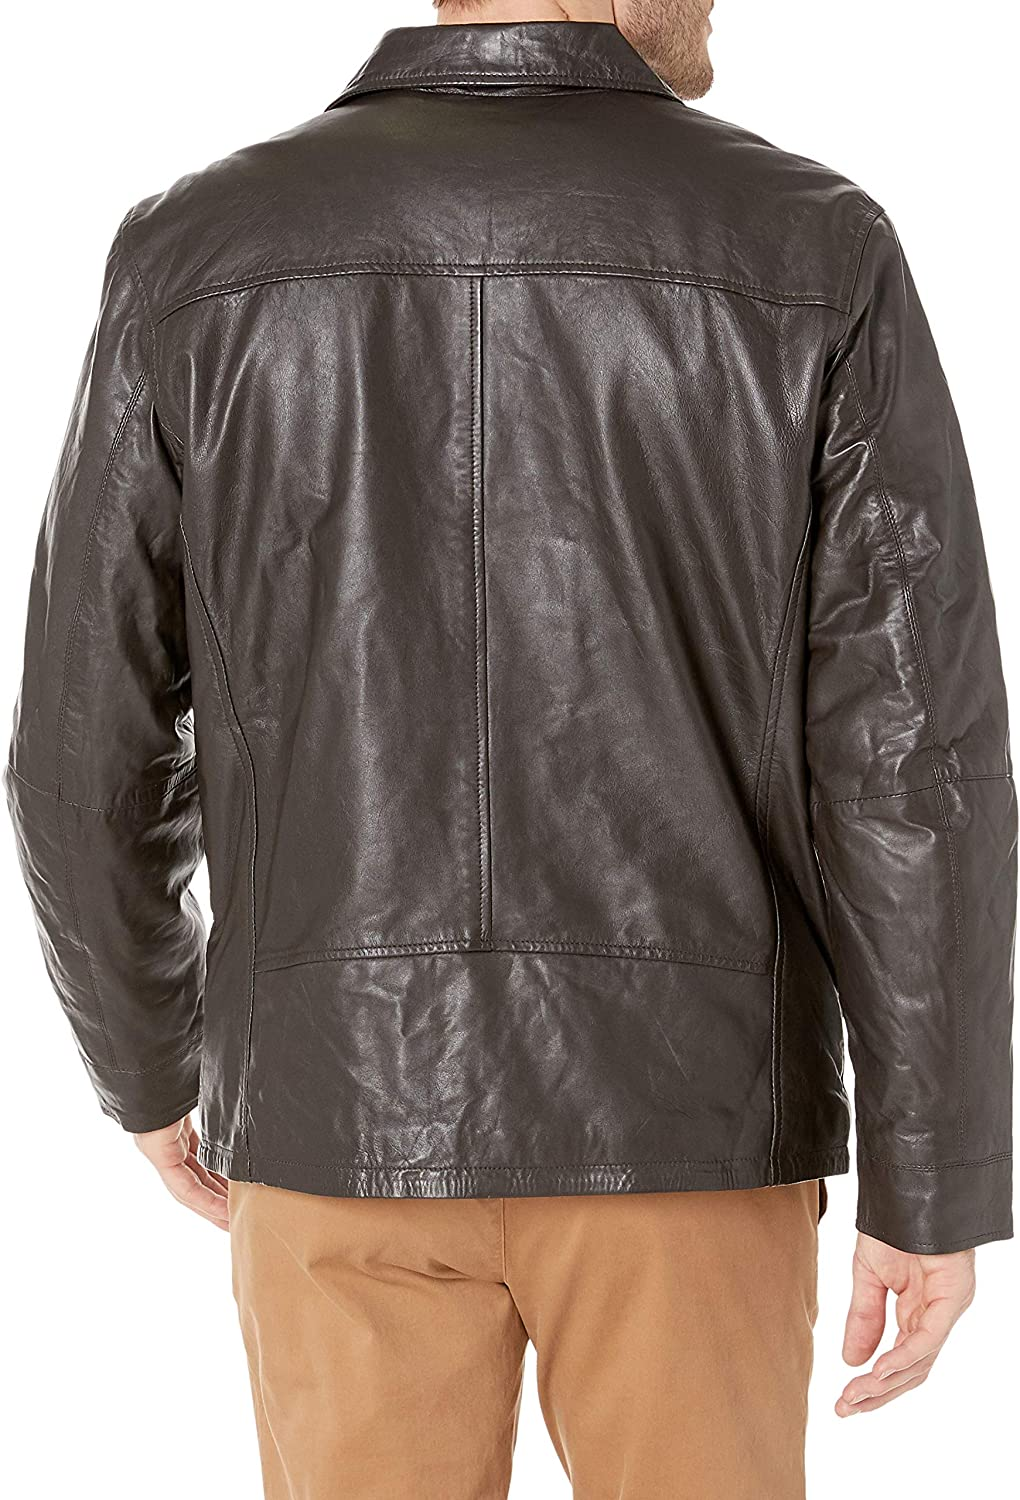 Excelled Mens Shirt Collar Leather Jacket